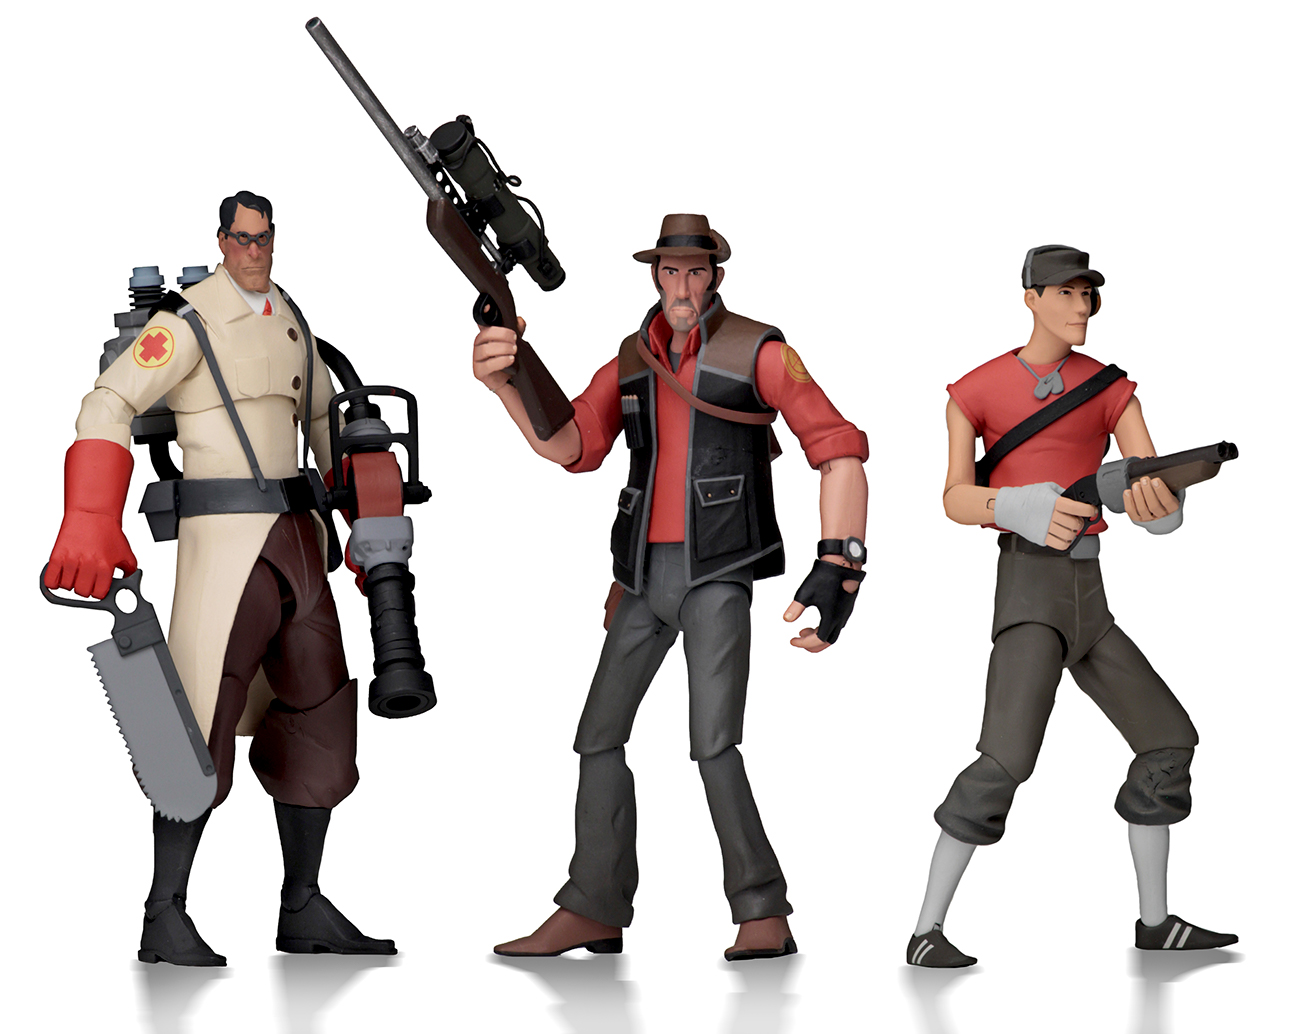 Fortress 2